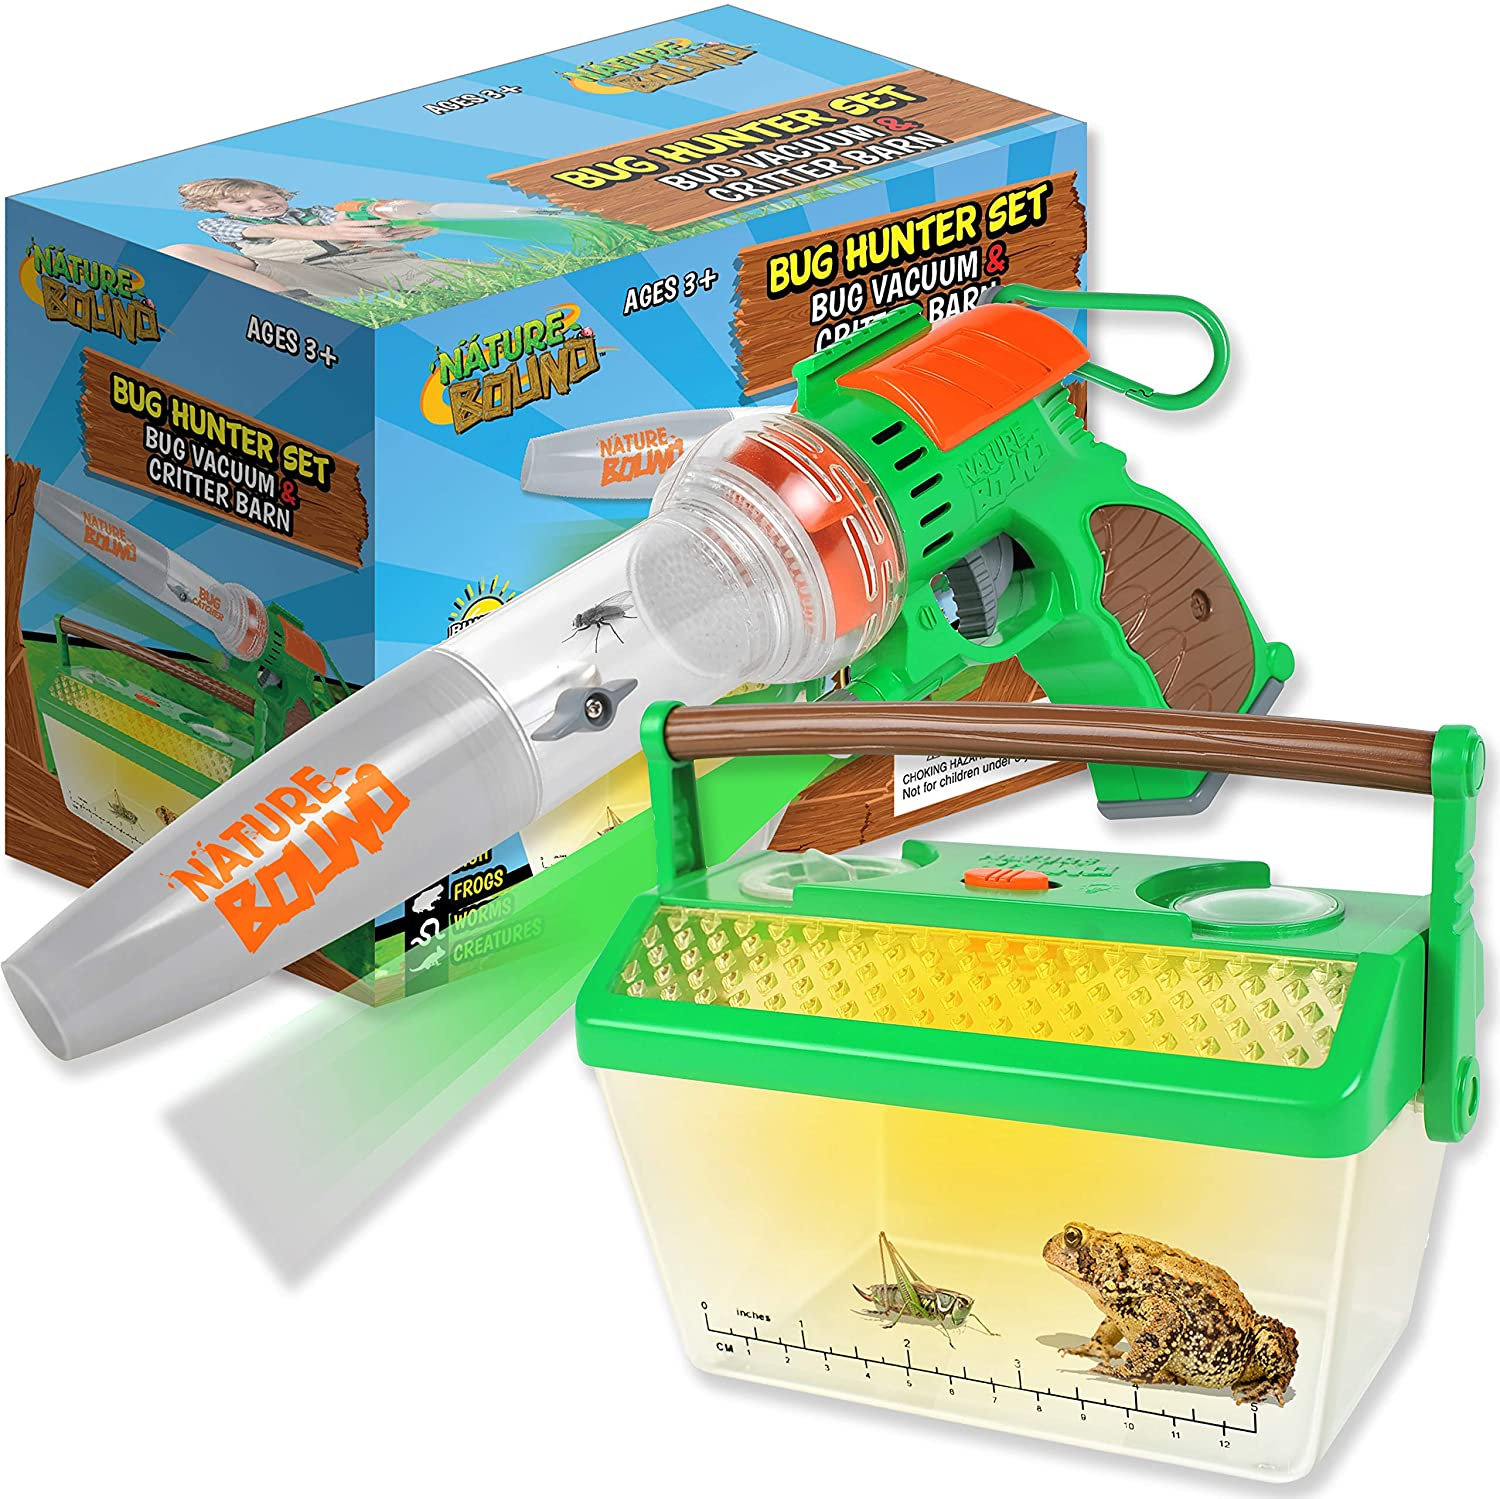 Nature Bound Bug Catcher Vacuum with Light Up Critter Habitat Case for Backyard Exploration - Complete Kit for Kids Includes Vacuum and Cage, Green